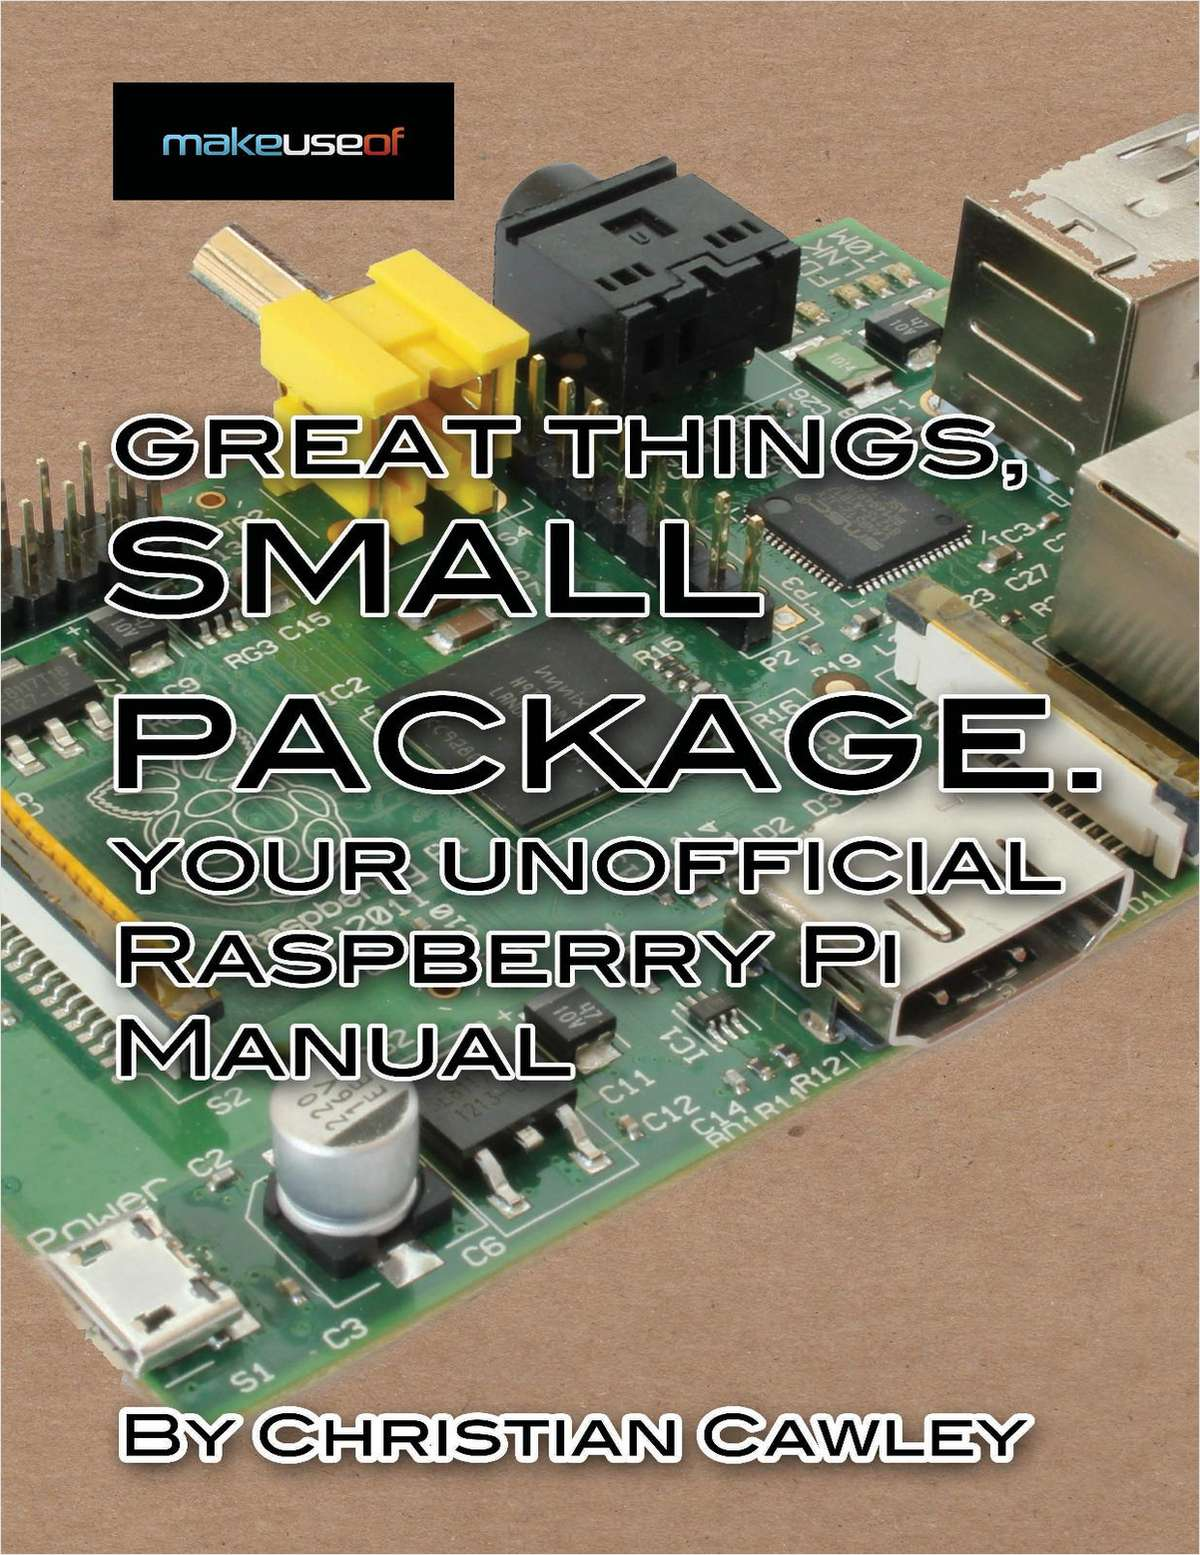 Your Unofficial Raspberry Pi Manual